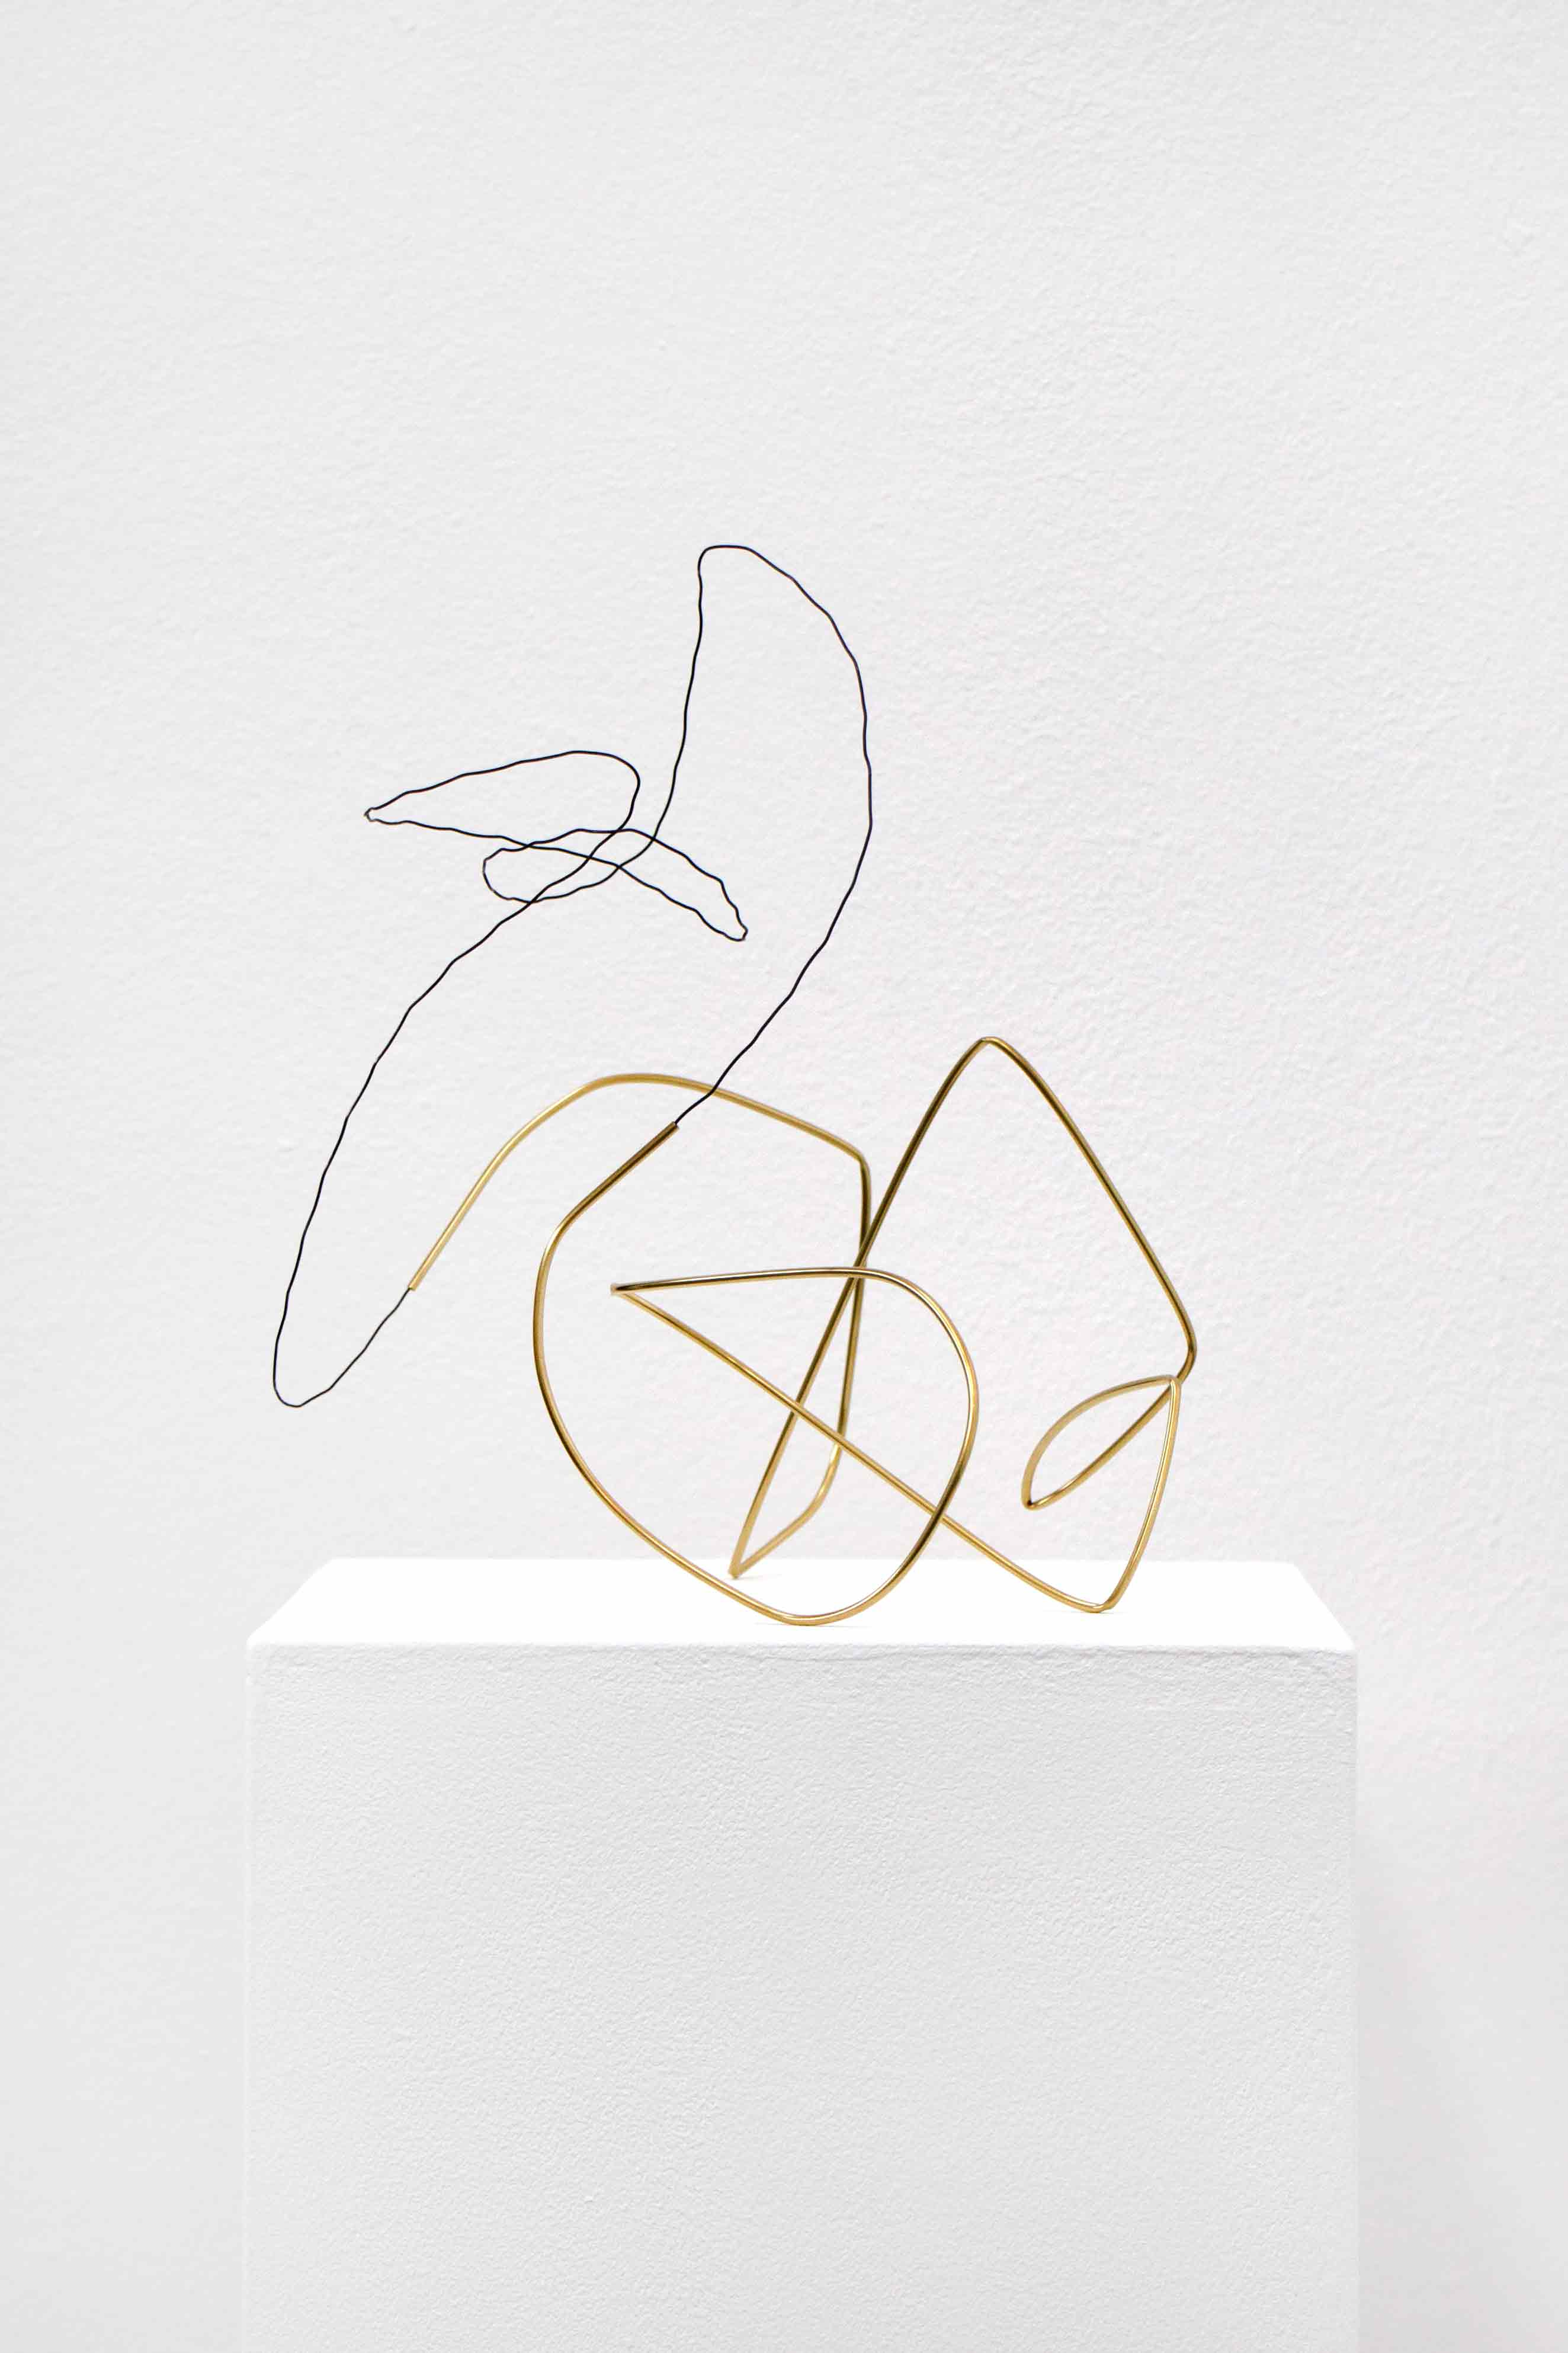 Spacedrawings_010, 2020, brass, iron wire